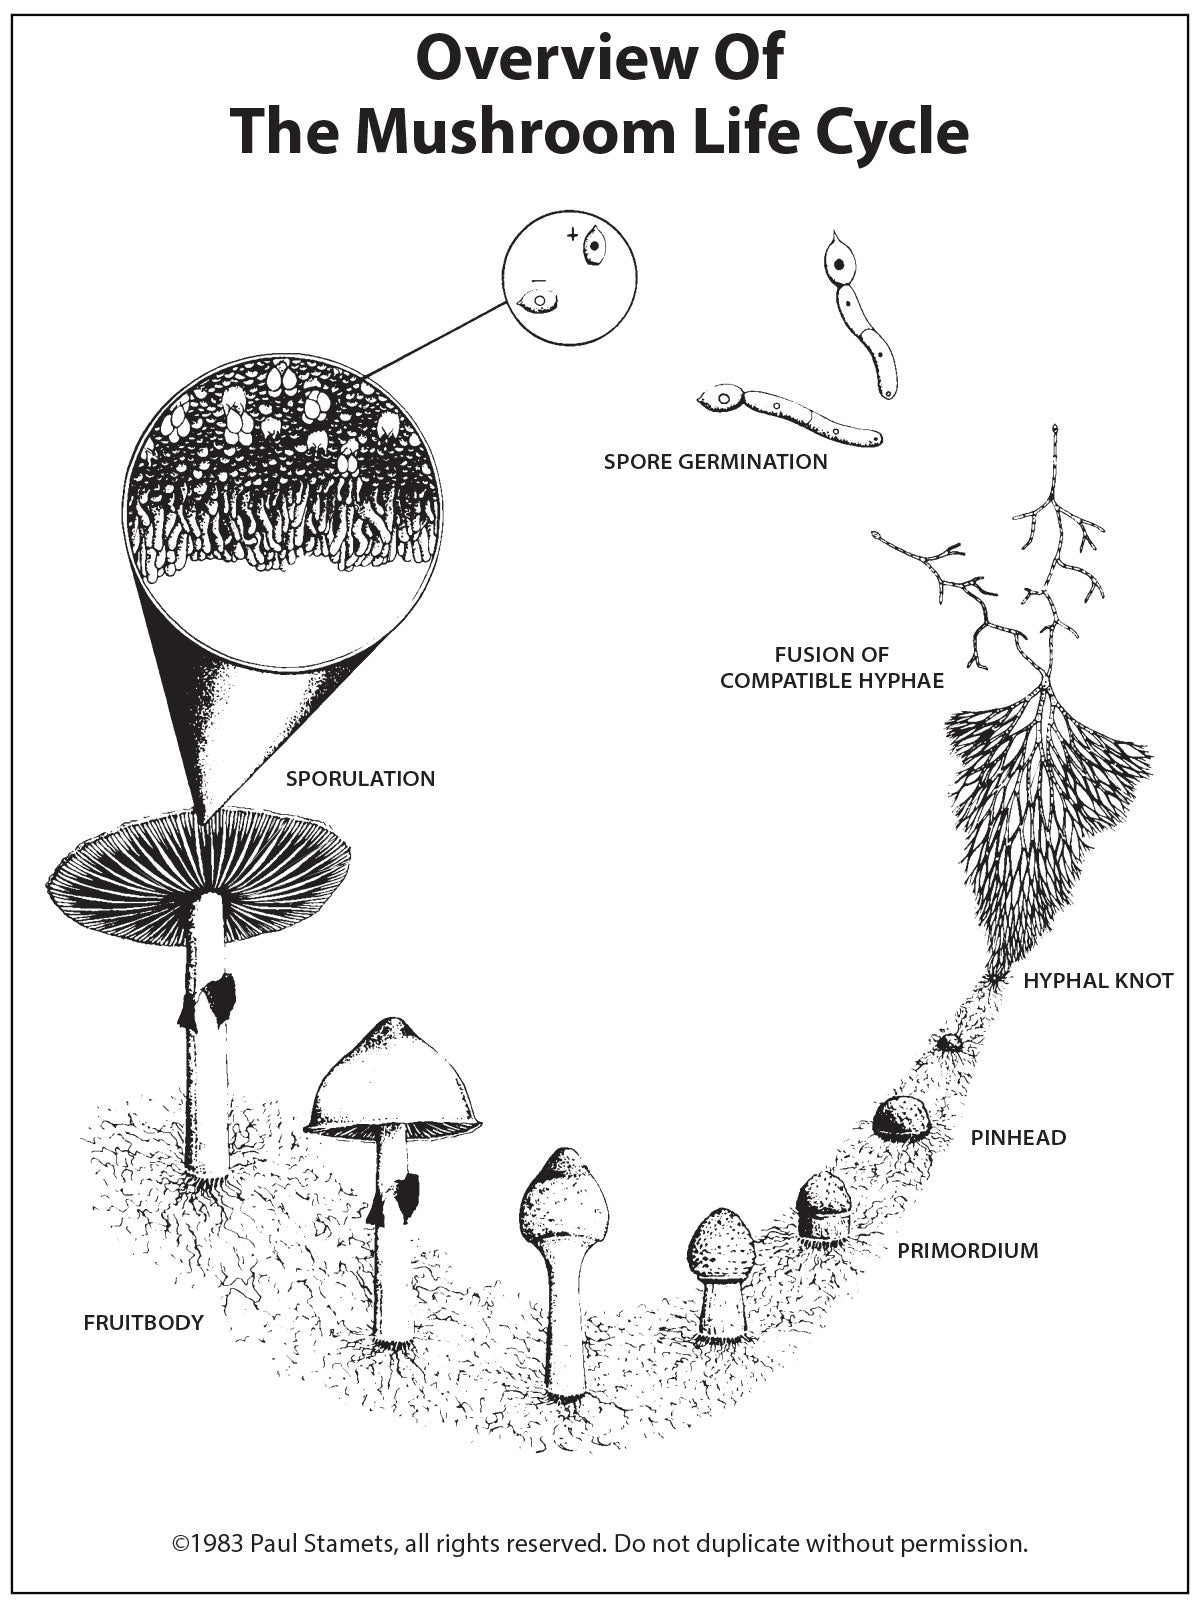 a pictorial overview of the mushroom life cycle fungi perfecti